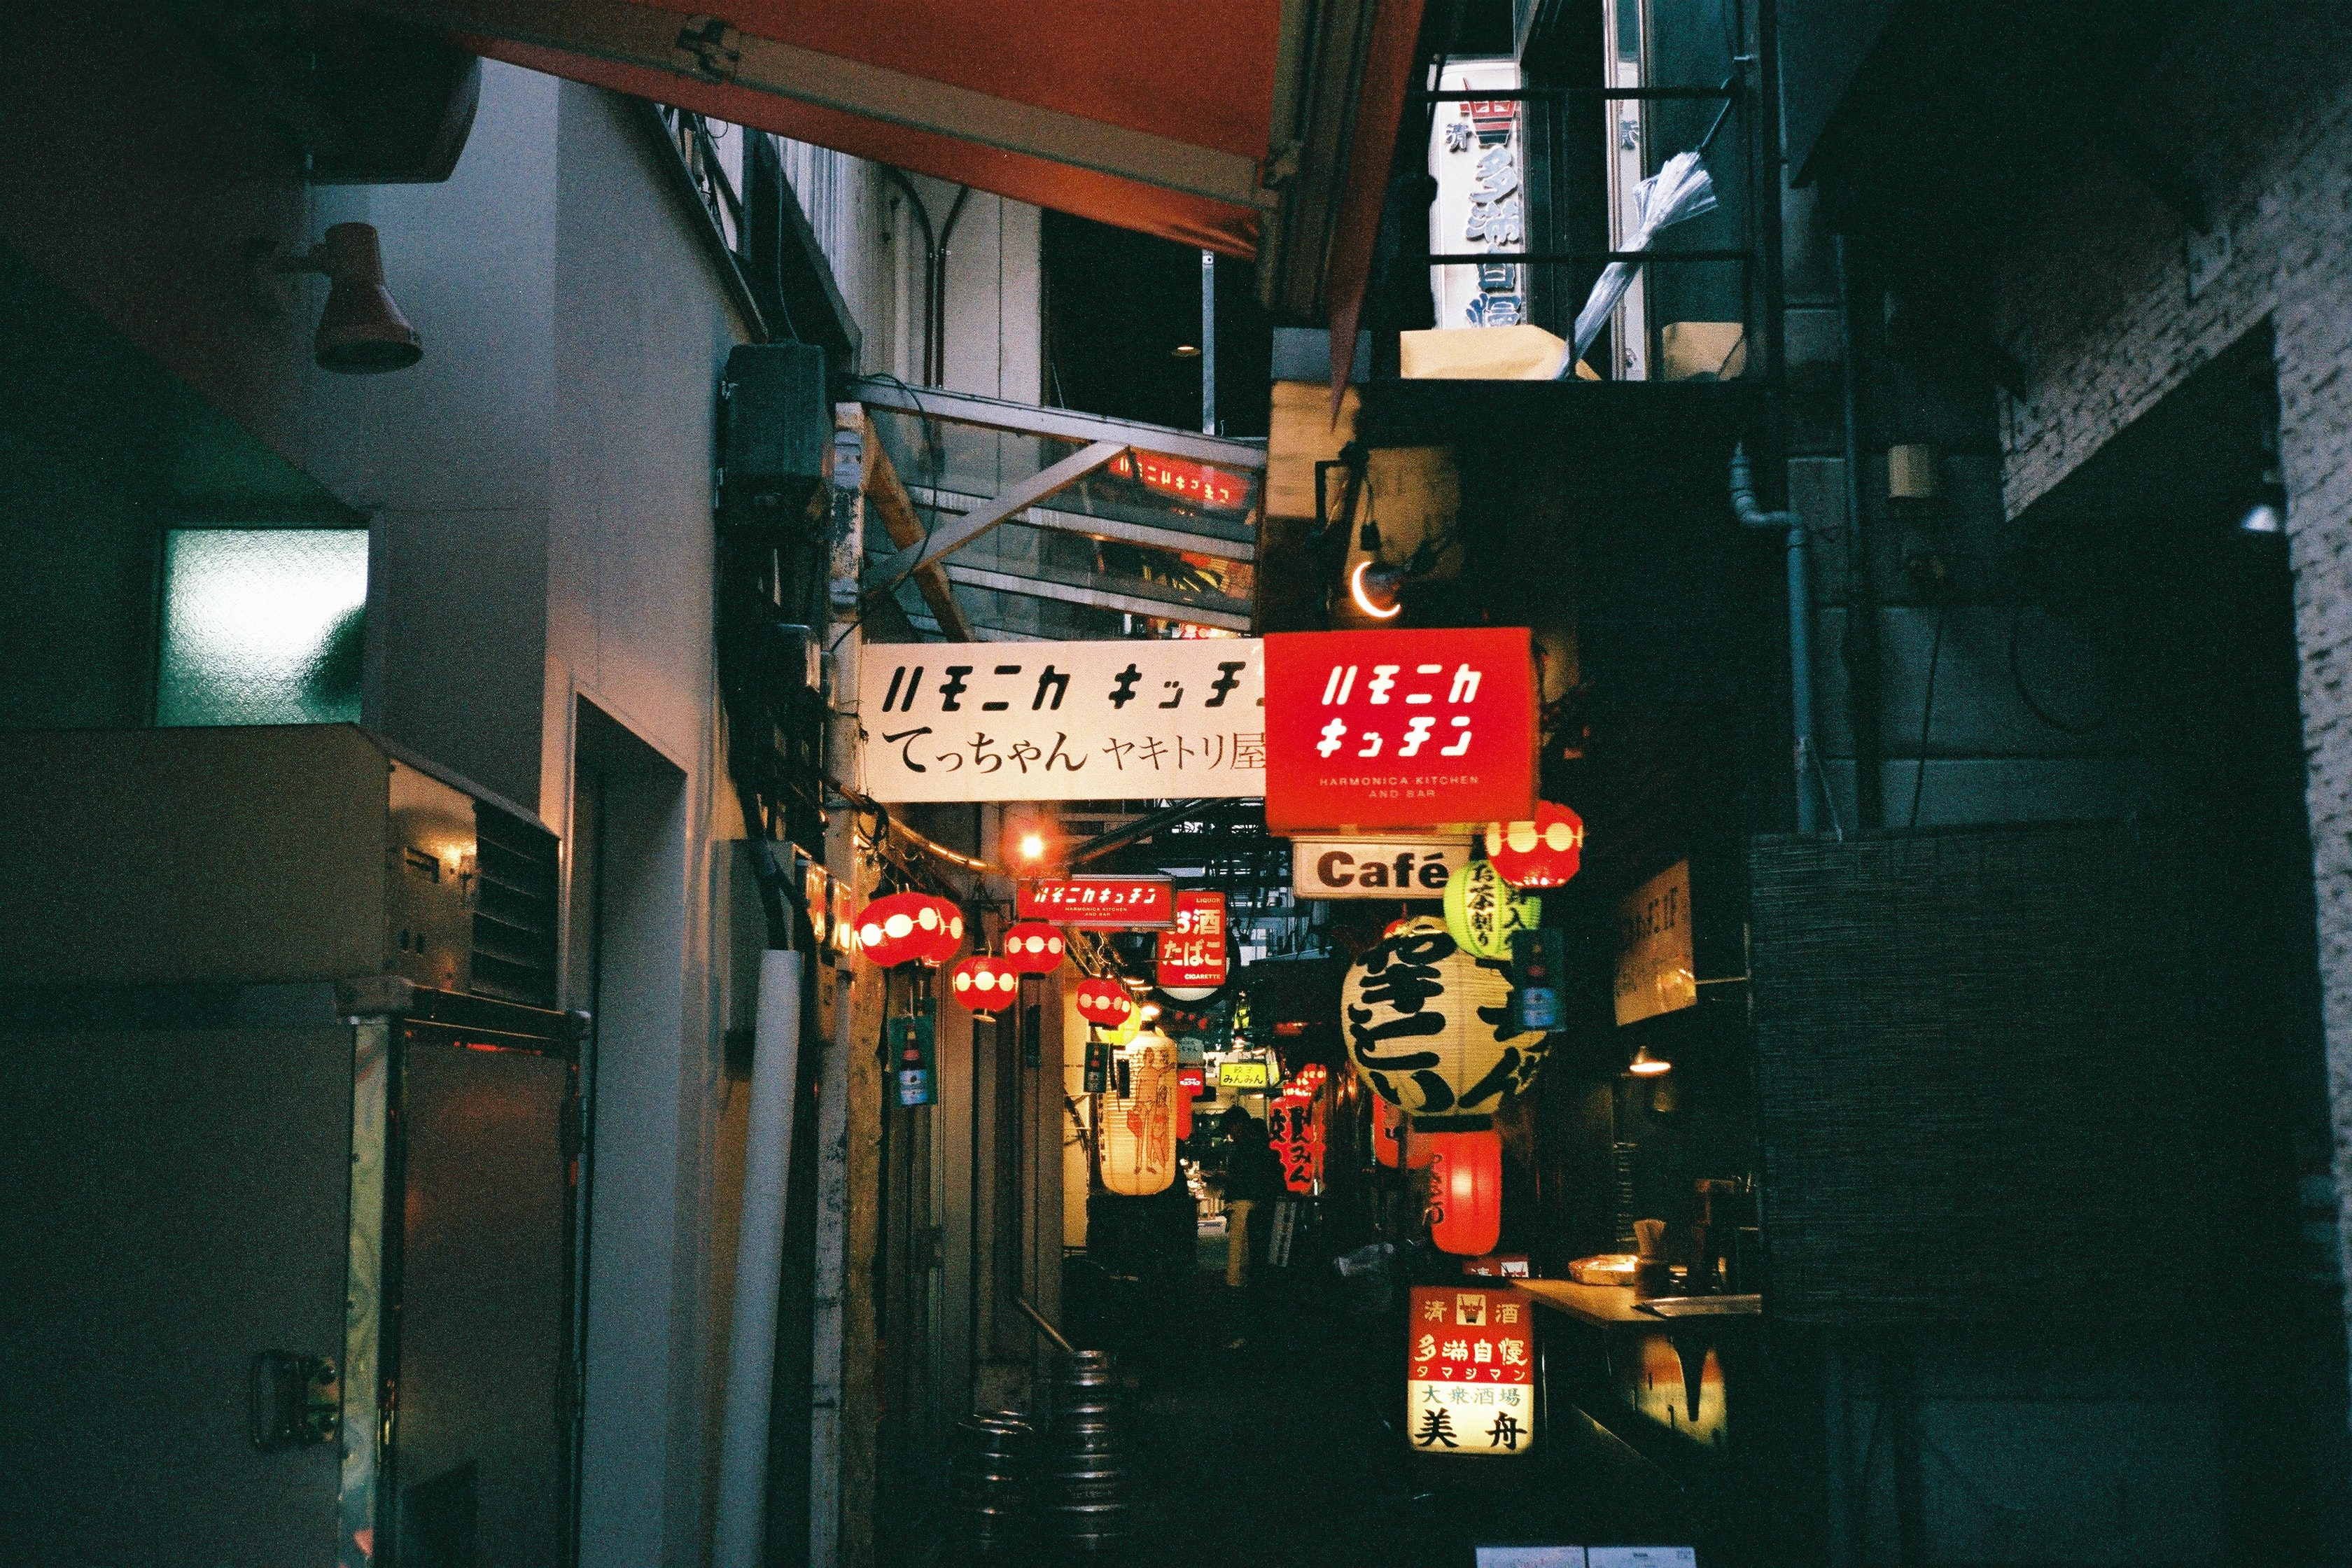 A busy Japanese marketplace street at night lit up with shop signs